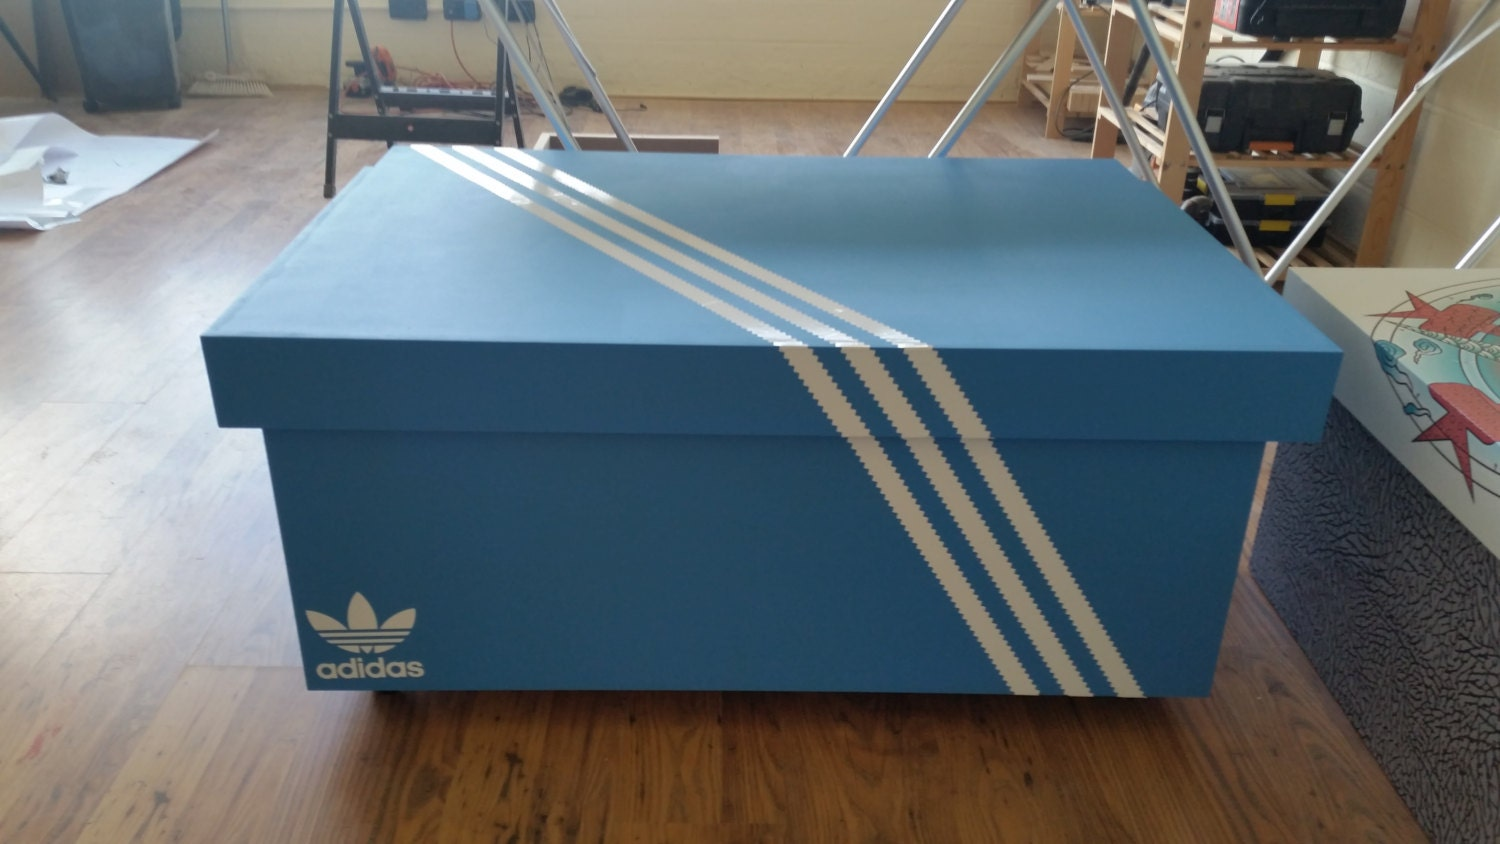 Xl giant trainer sneaker storage box adidas gift for him - Boite a chaussure decoree ...